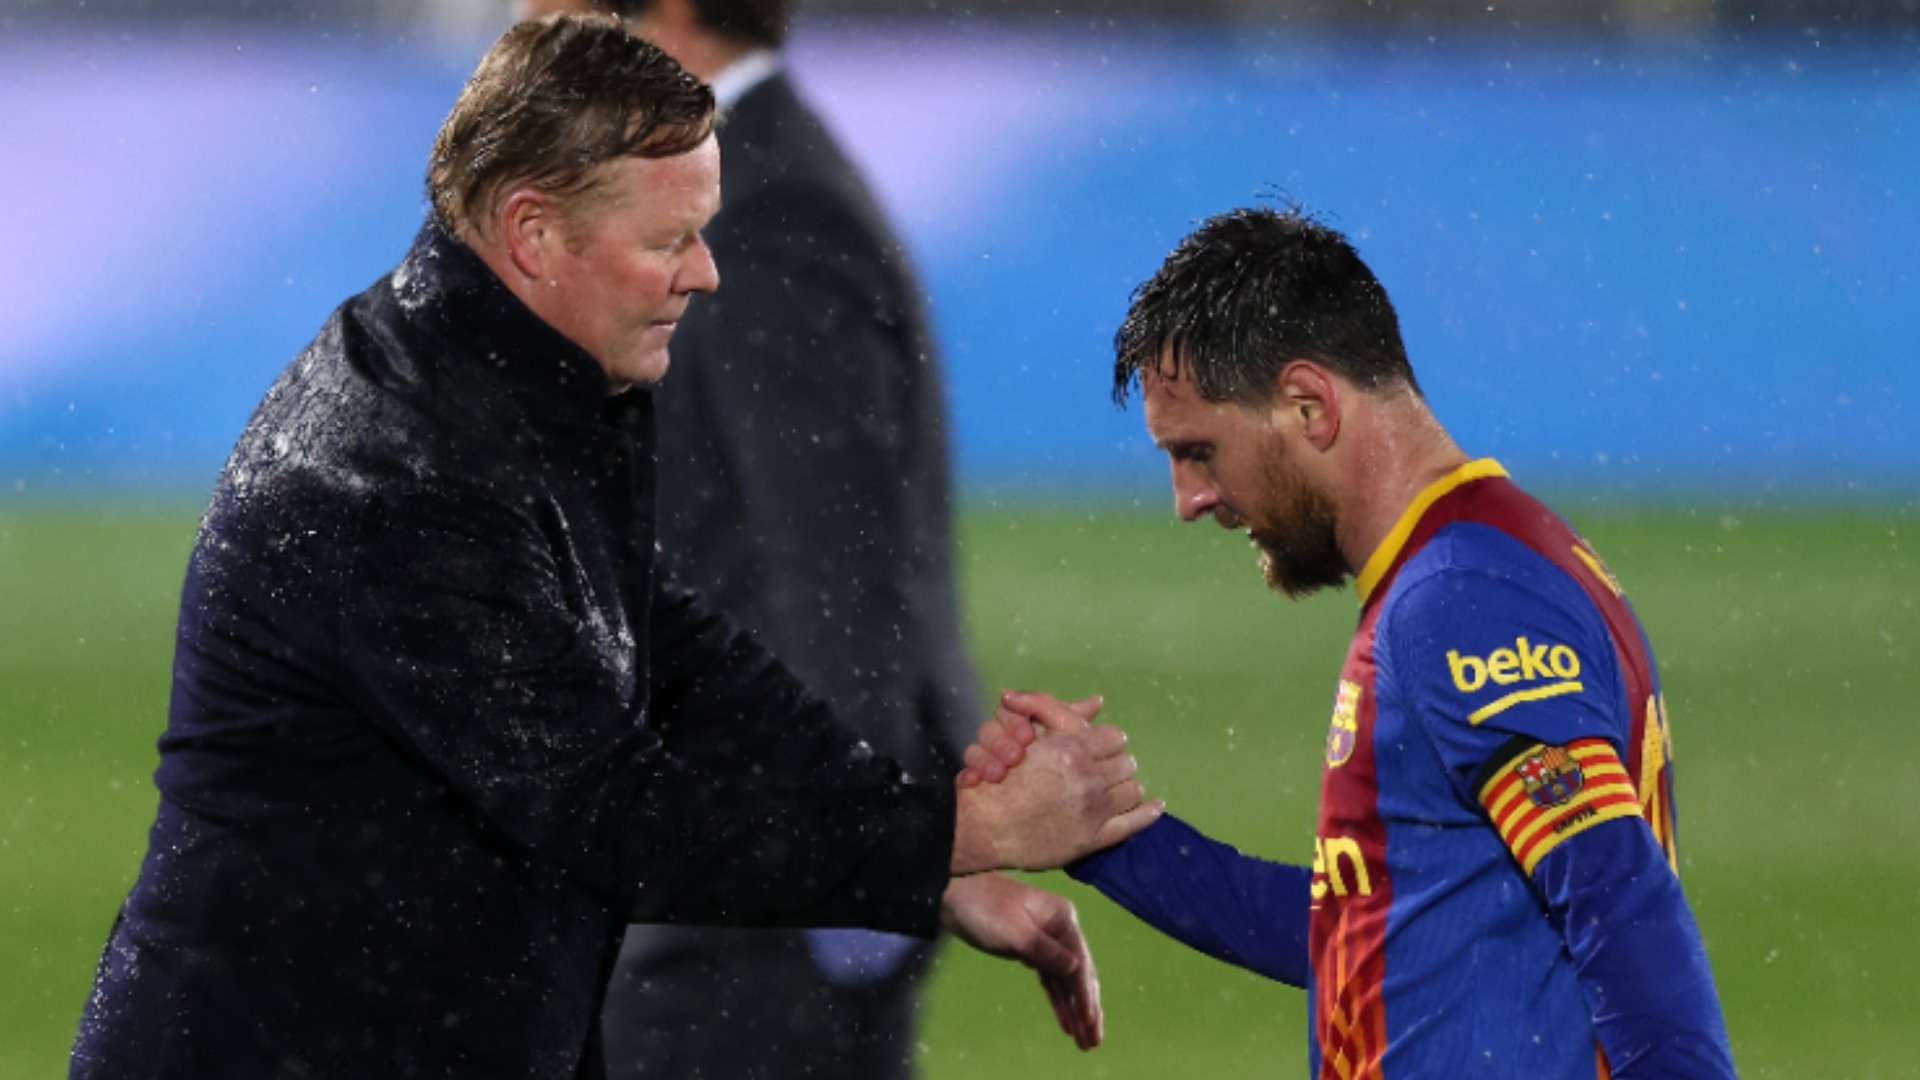 Messi misery as Madrid toast brilliant Benzema – An Opta look at El Clasico